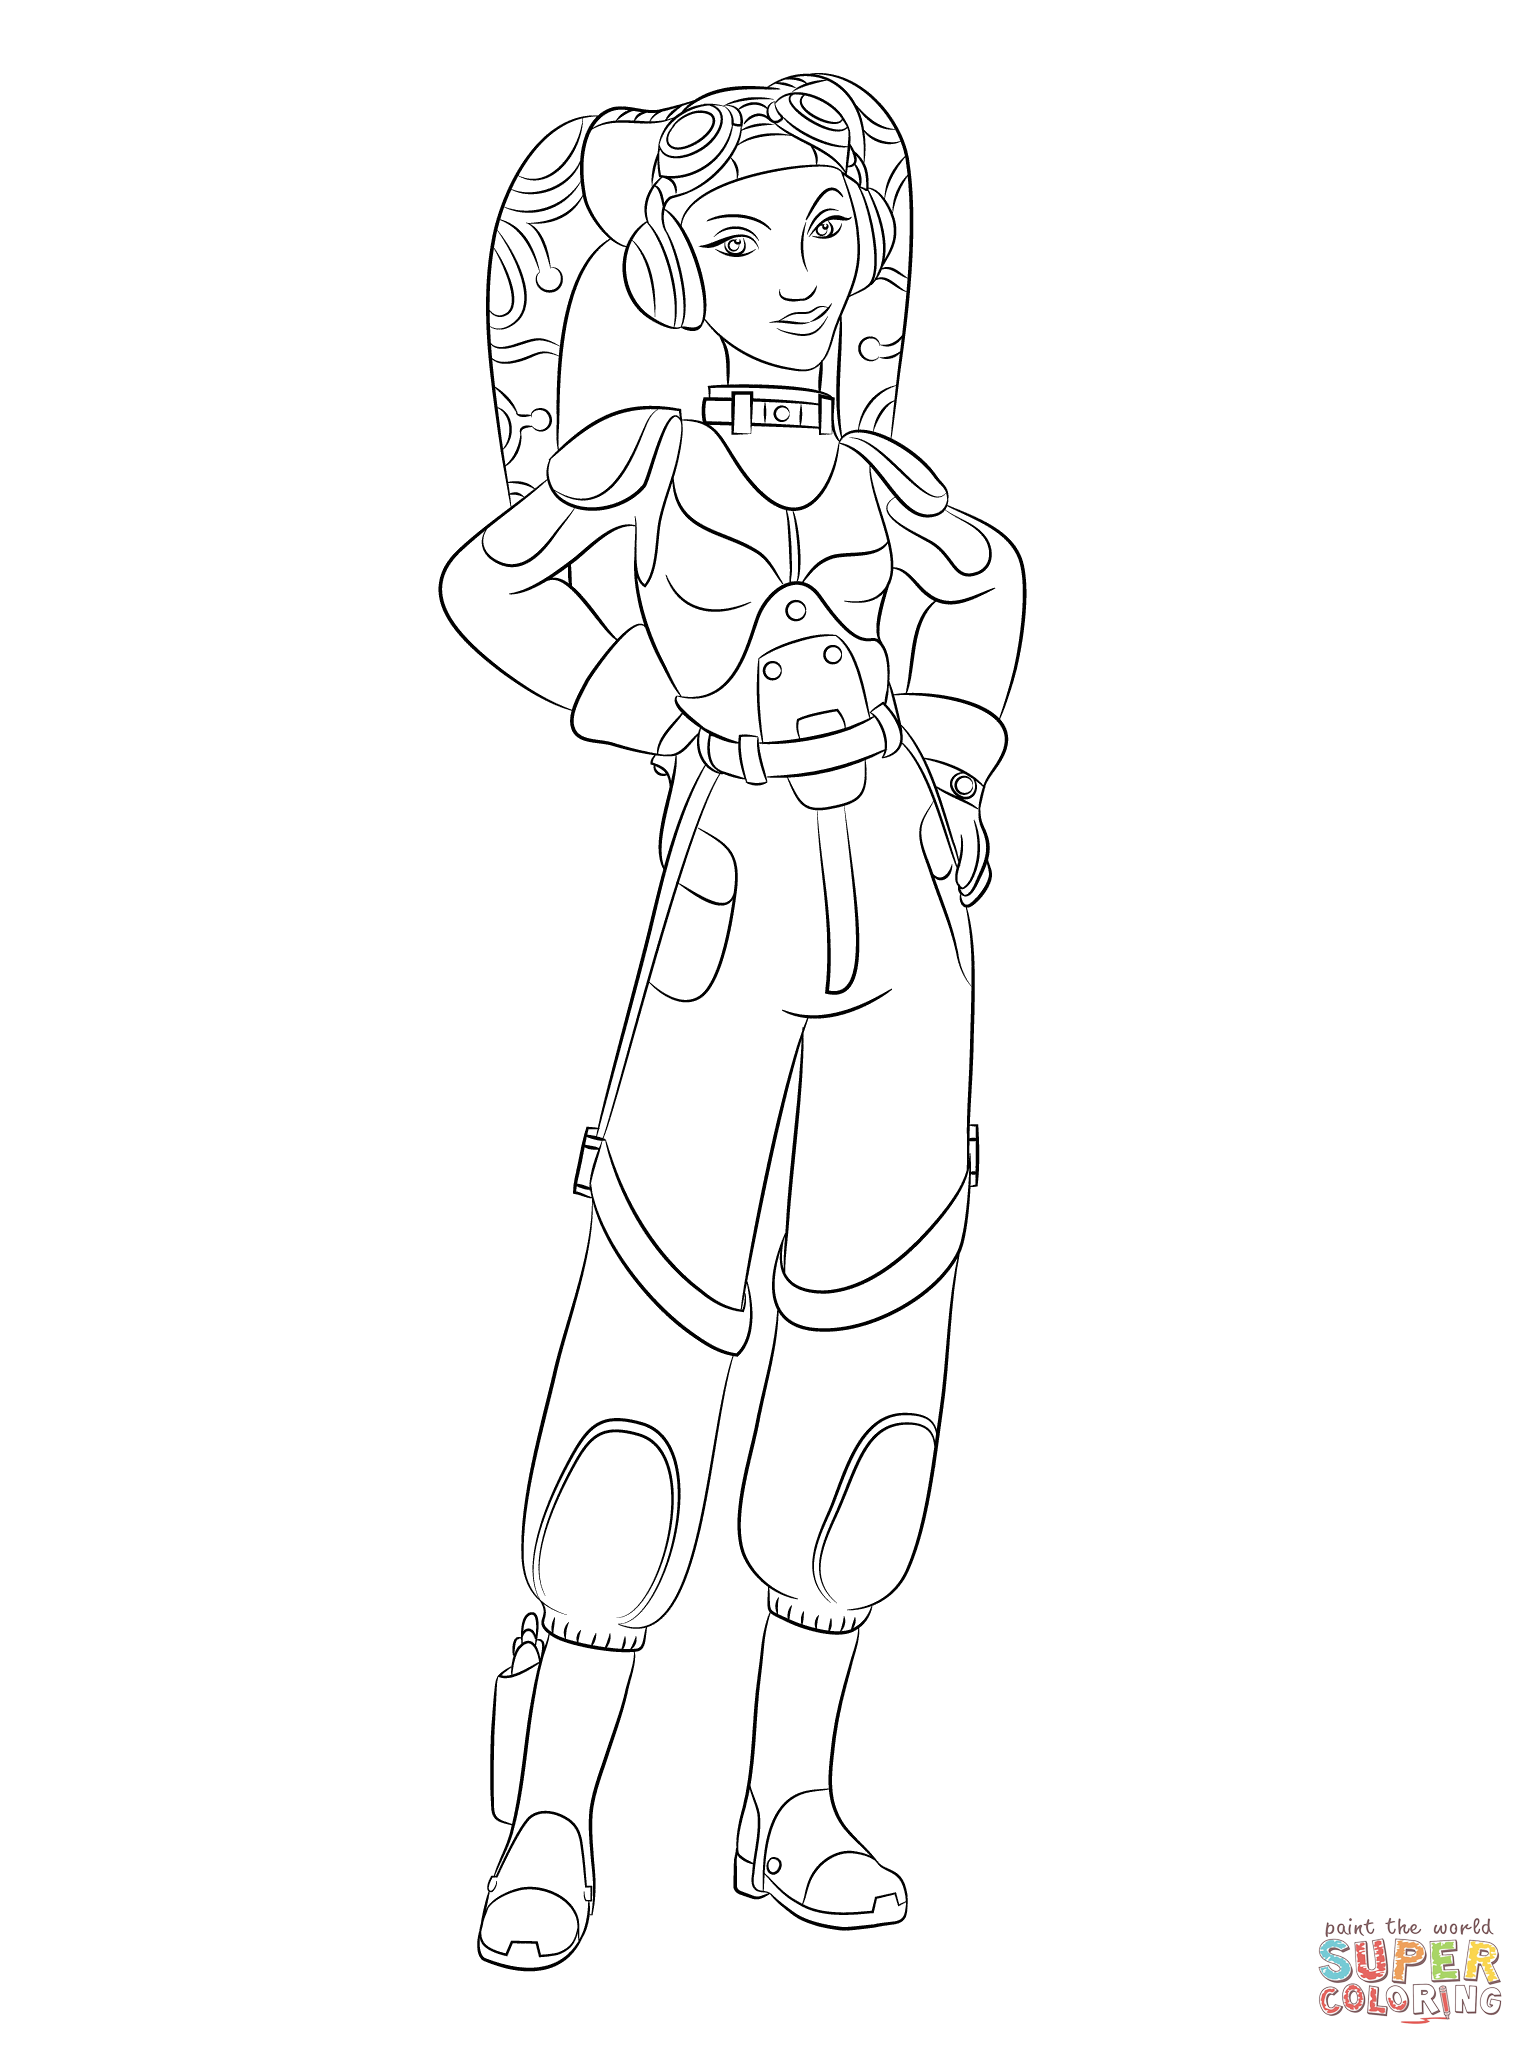 Star Wars Rebels Hera Syndulla Coloring Page From Category Select 27336 Printable Crafts Of Cartoons Nature Animals Bible And Many